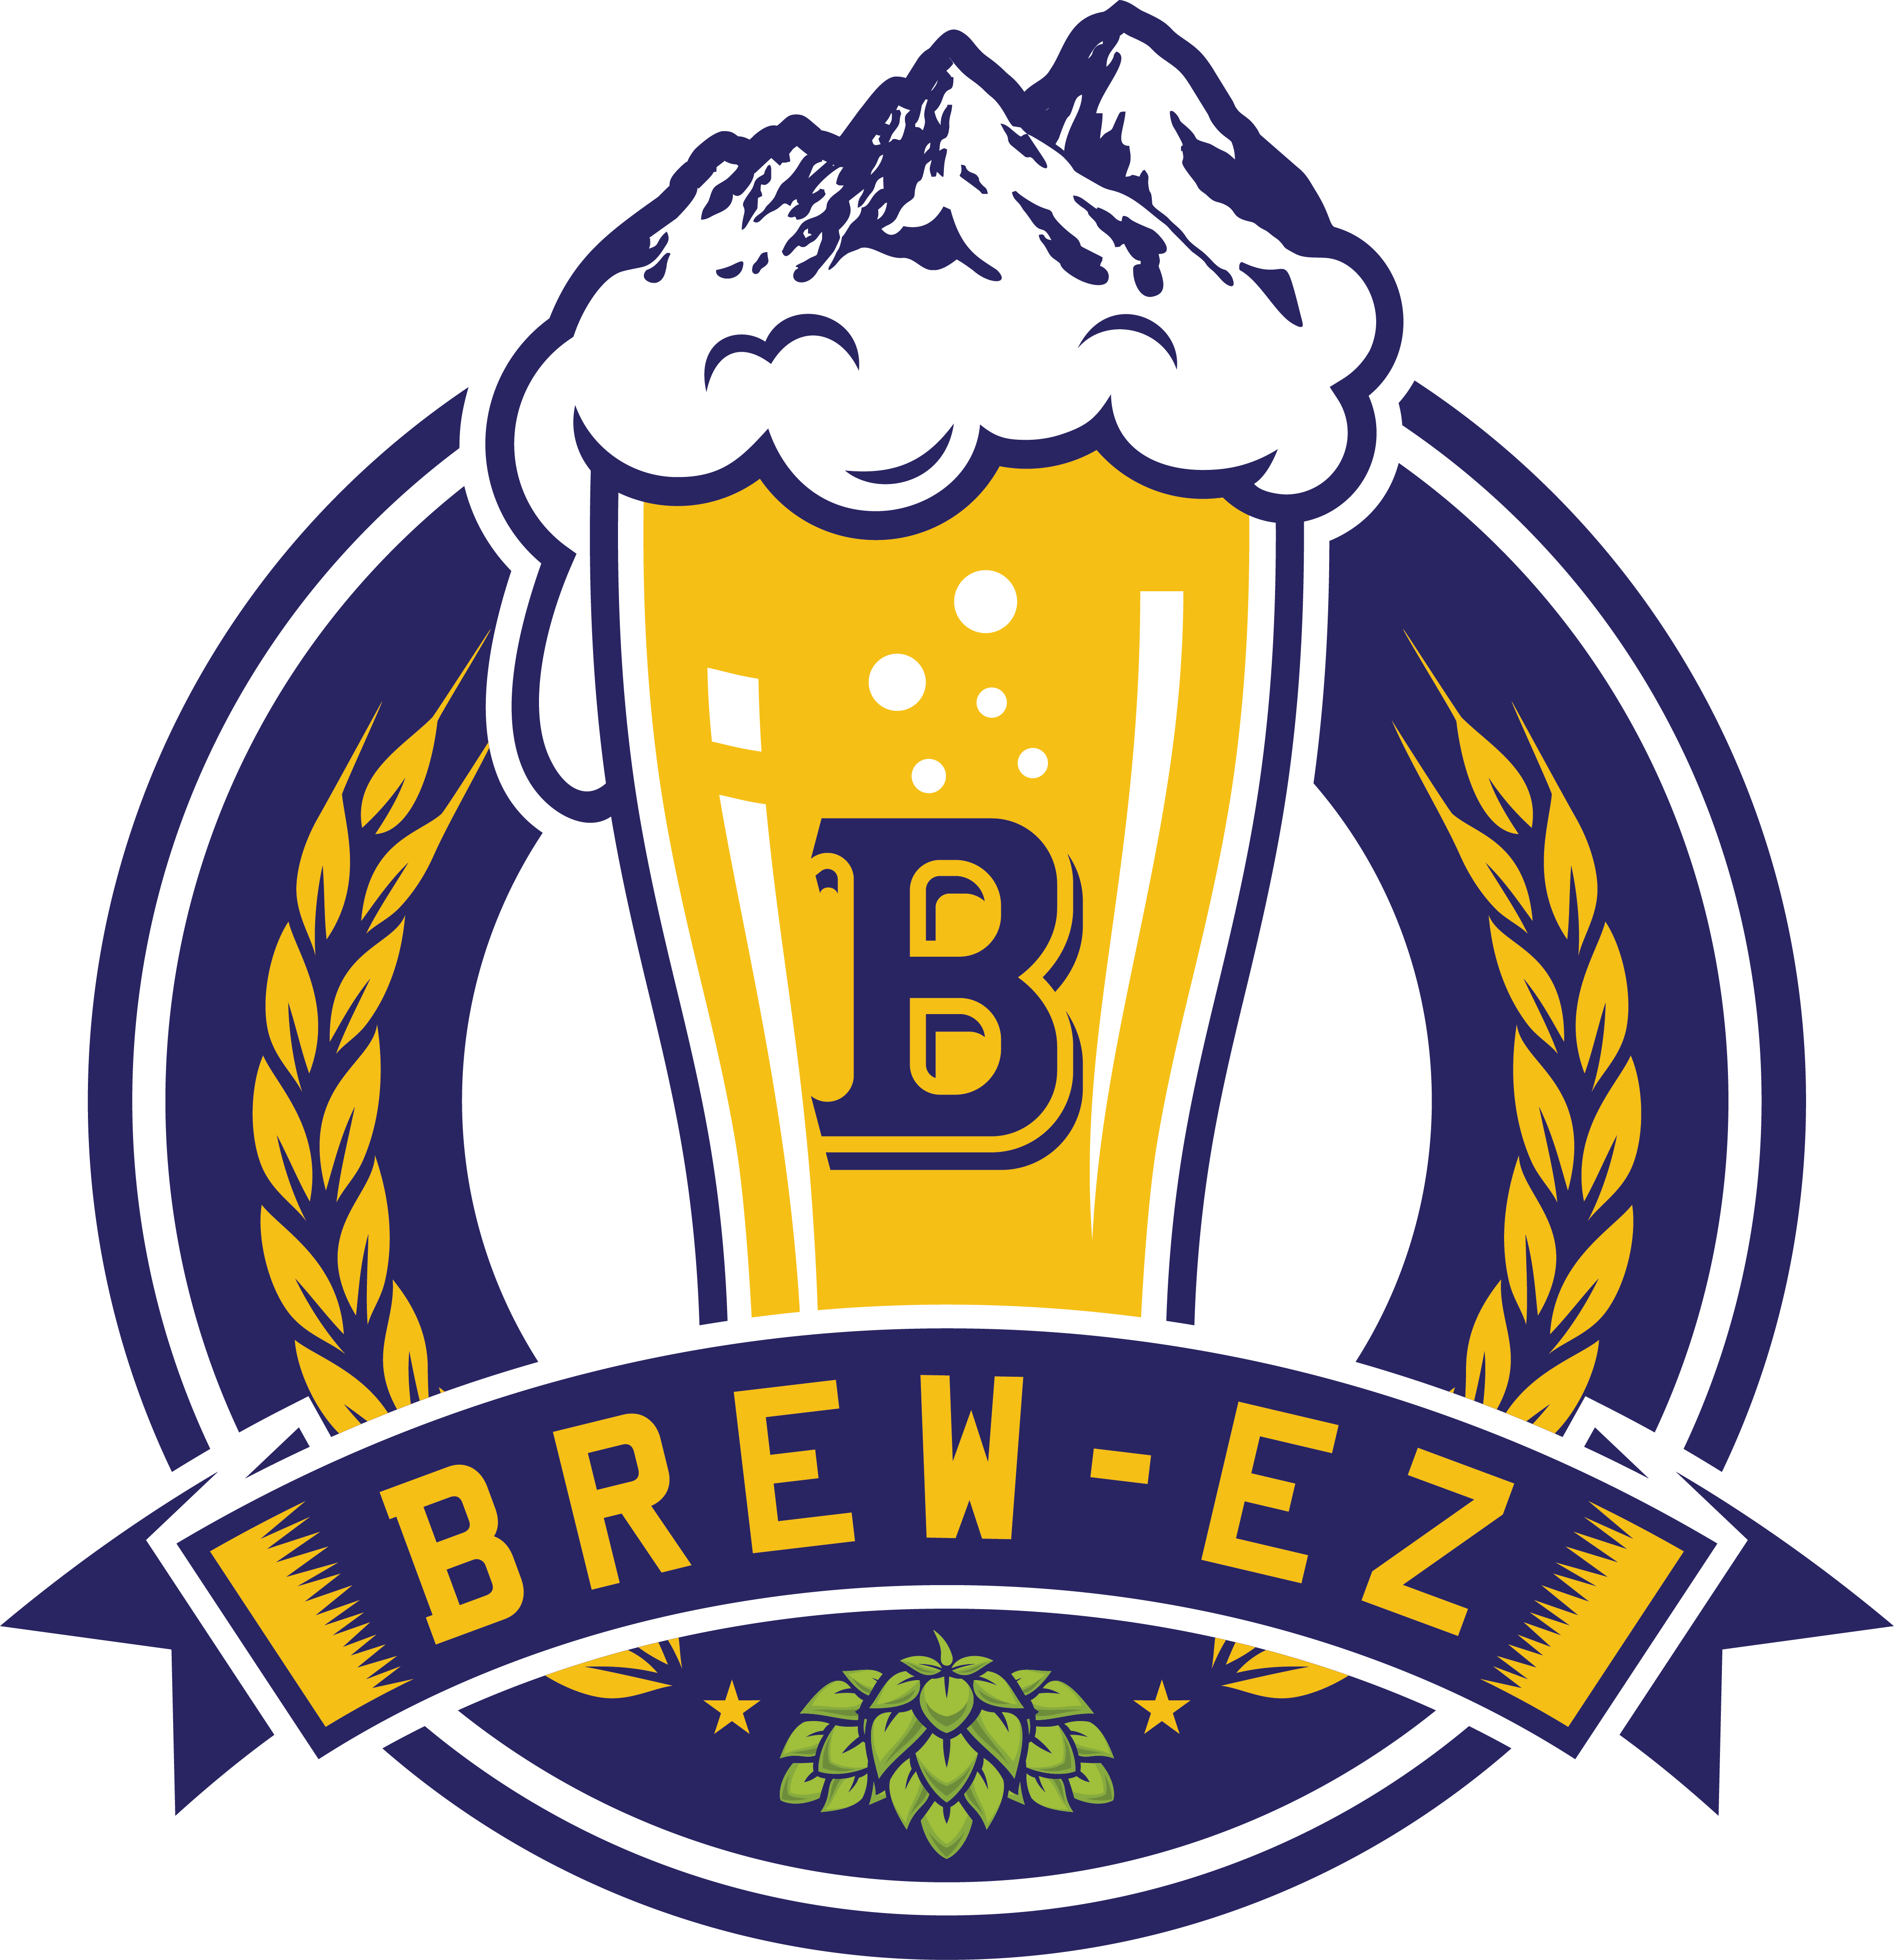 Create a powerful Beer Logo That makes People want to drink craft beer for an new app company!